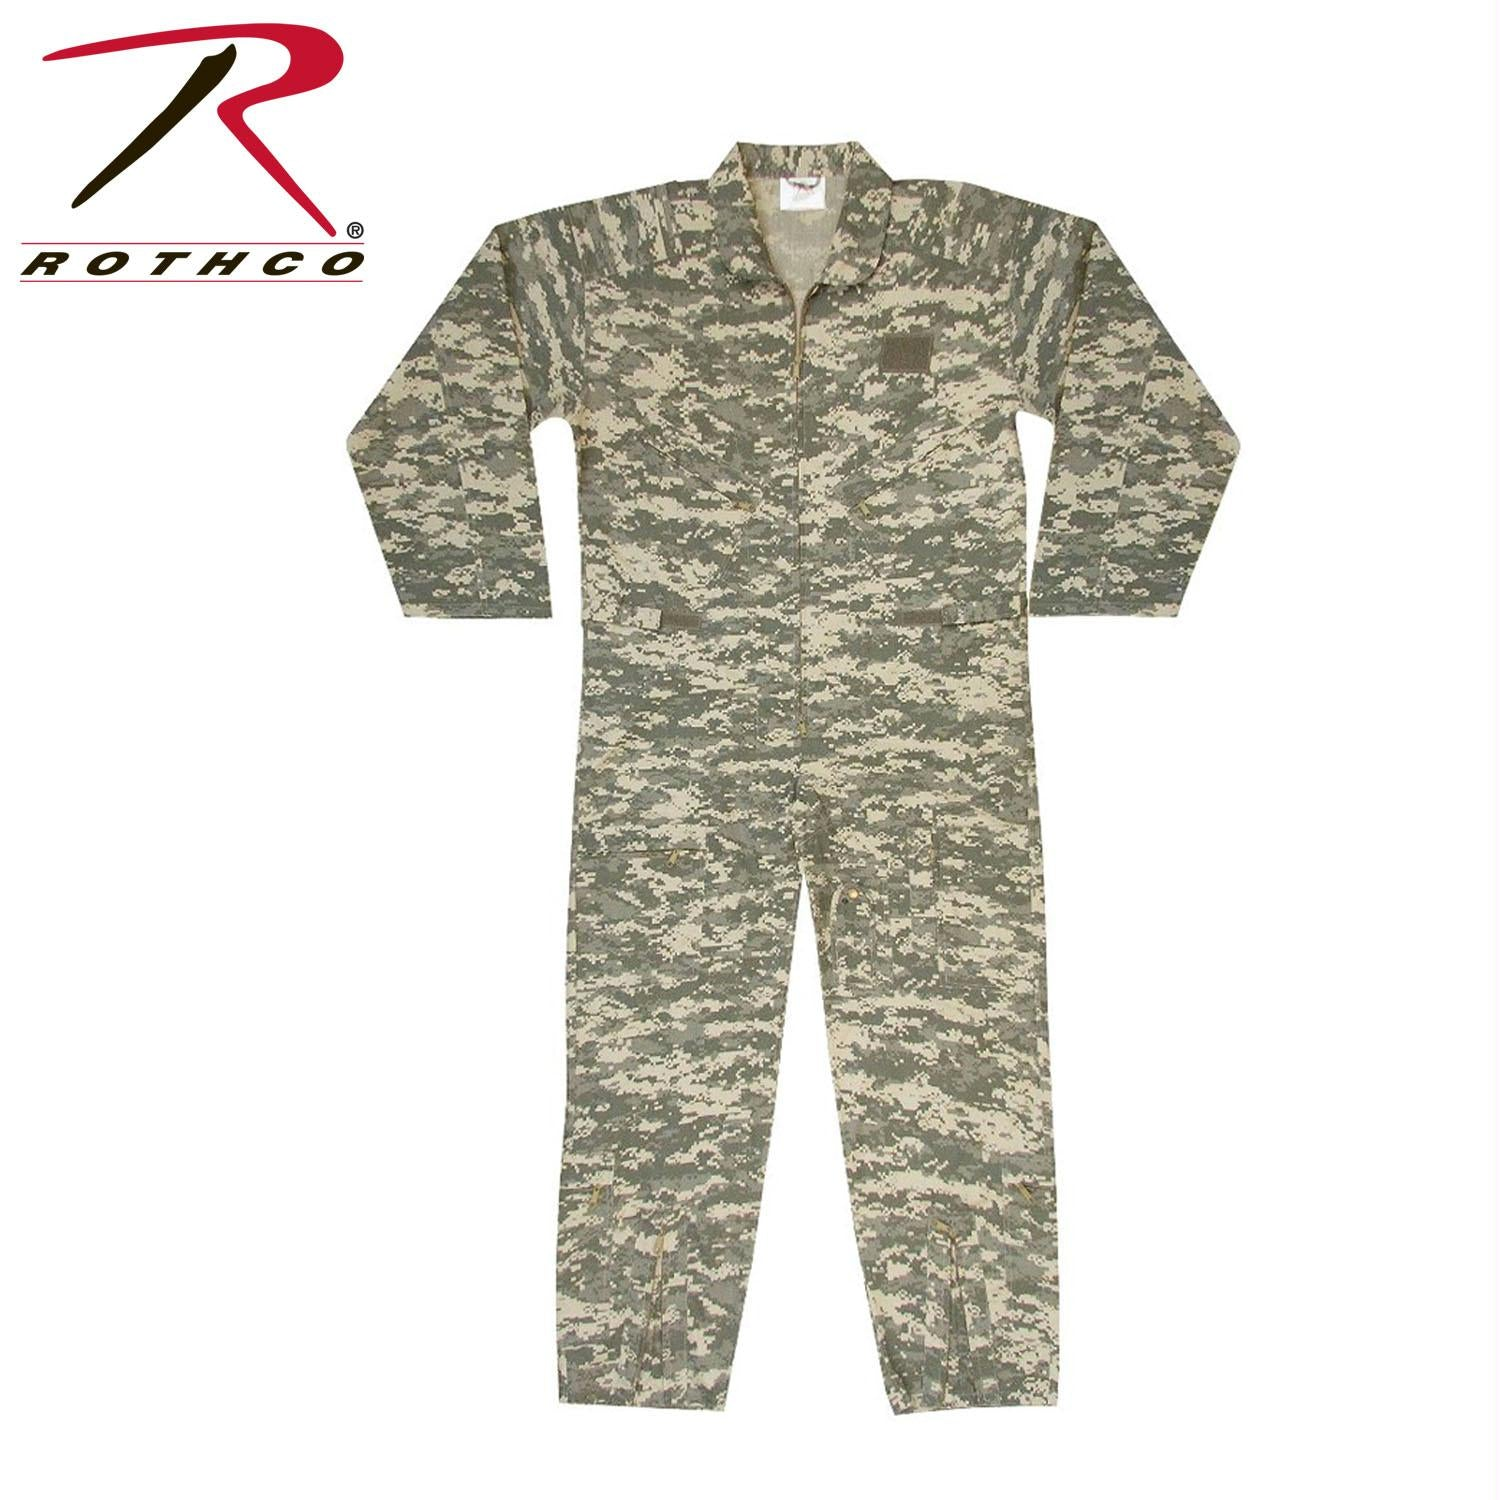 Rothco Flightsuits - ACU Digital Camo / 3XL